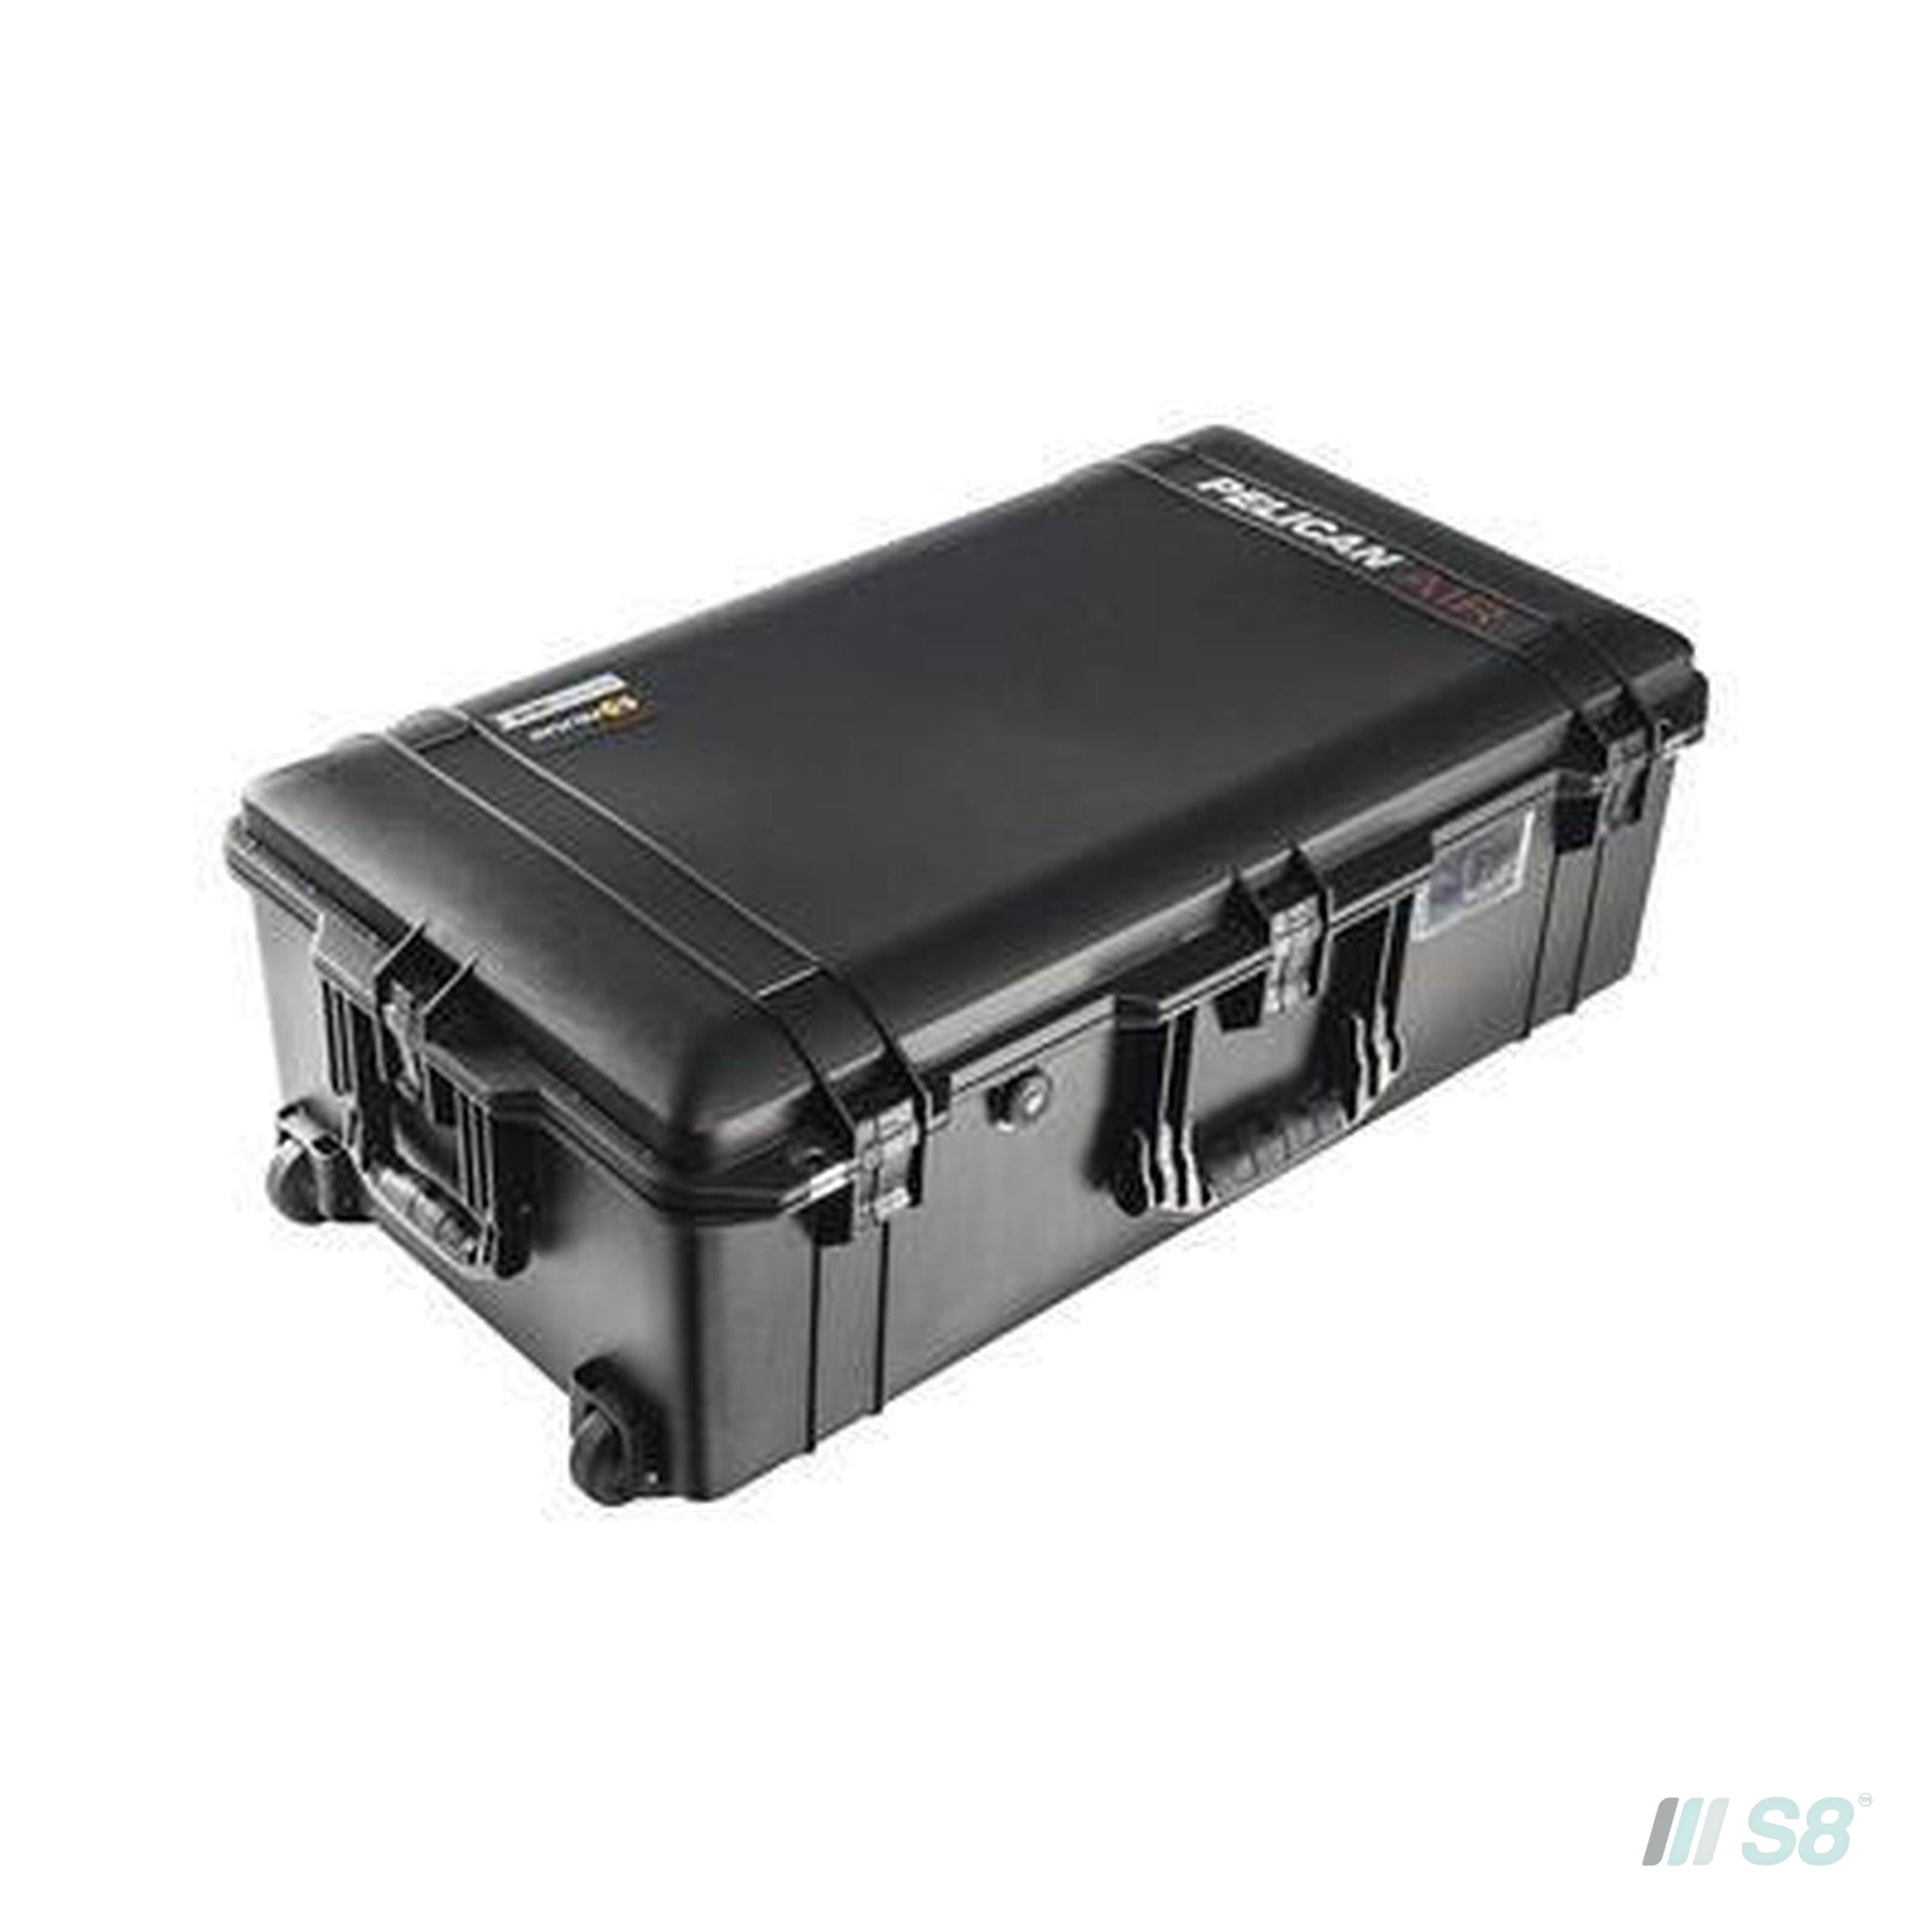 1615 AIR, WL/WF, BLACK-Pelican-S8 Products Group